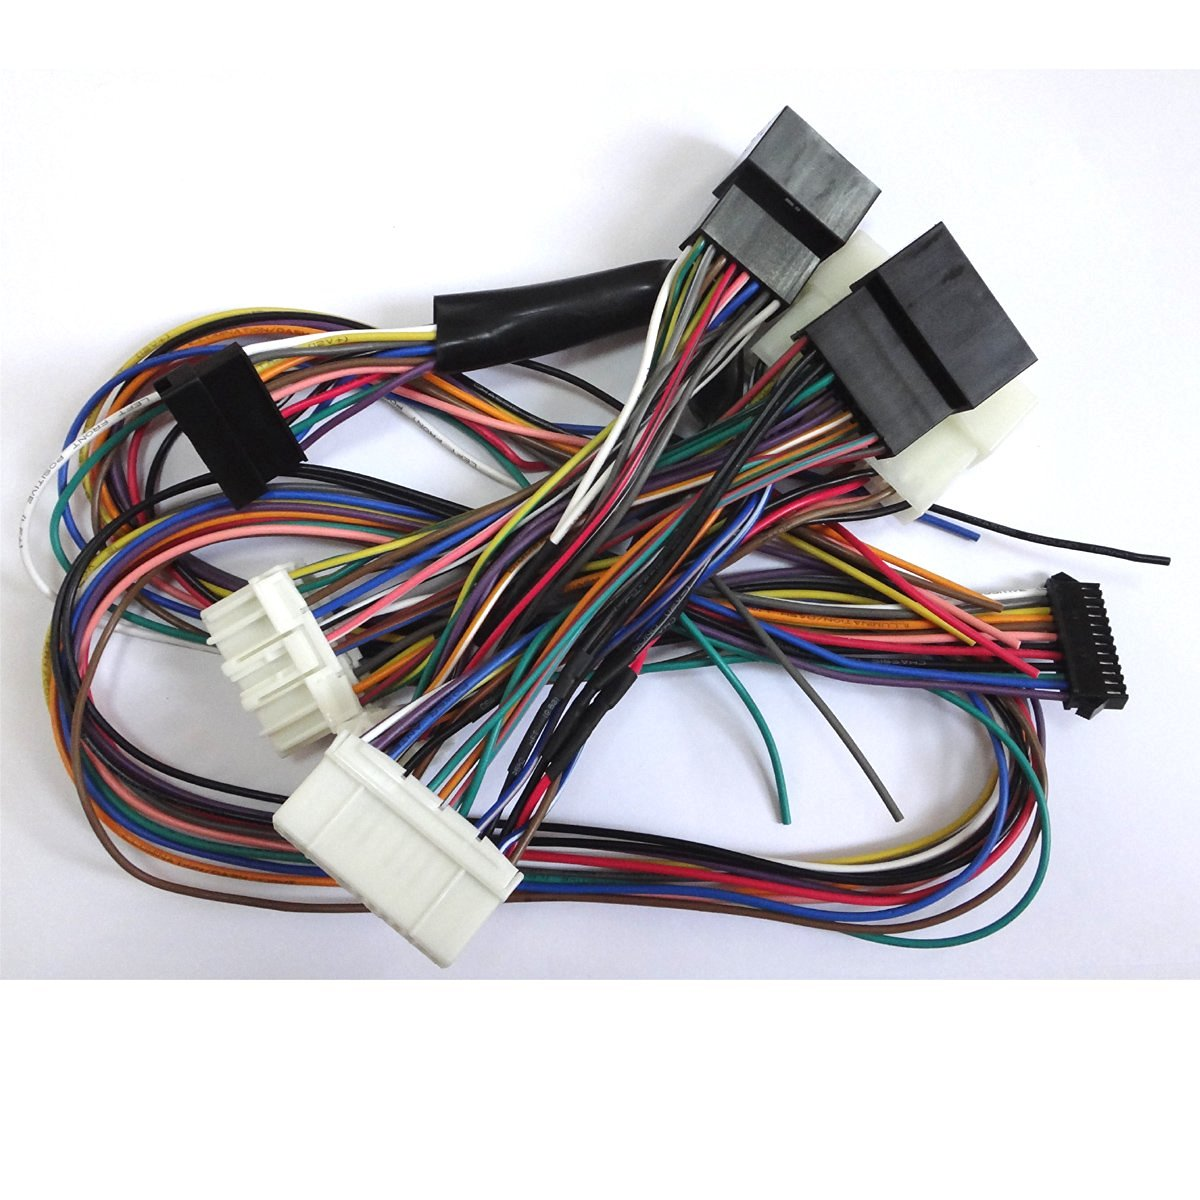 Cheap Acura Obd Find Deals On Line At Alibabacom 2014 Mdx Wiring Harness Get Quotations For Obd0 To Obd1 Ecu Jumper Wire Honda Wh018